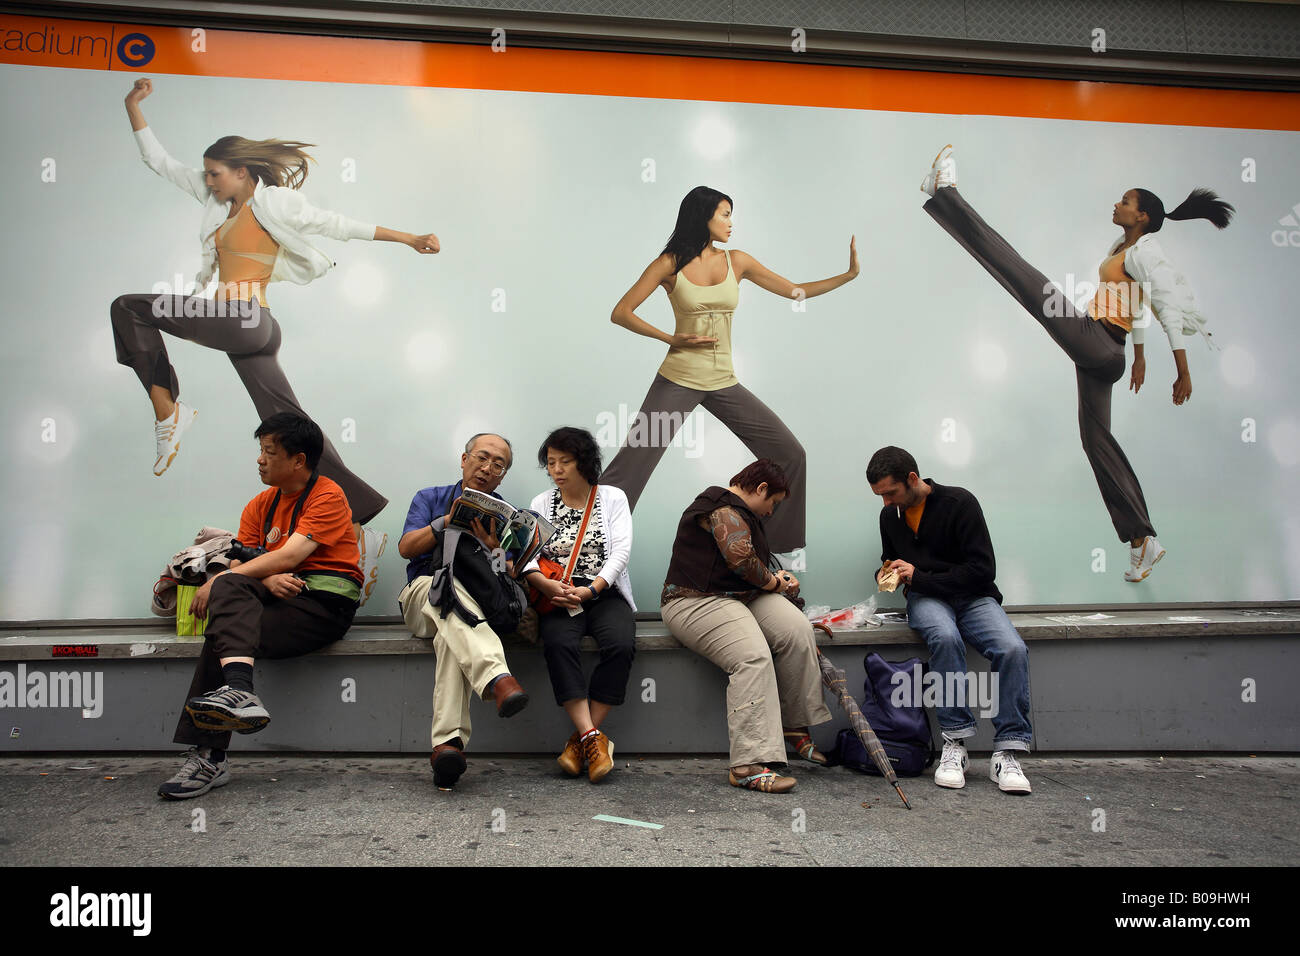 Supermercado No hagas enlace  People in front of an Adidas advertisement, Paris, France Stock Photo -  Alamy